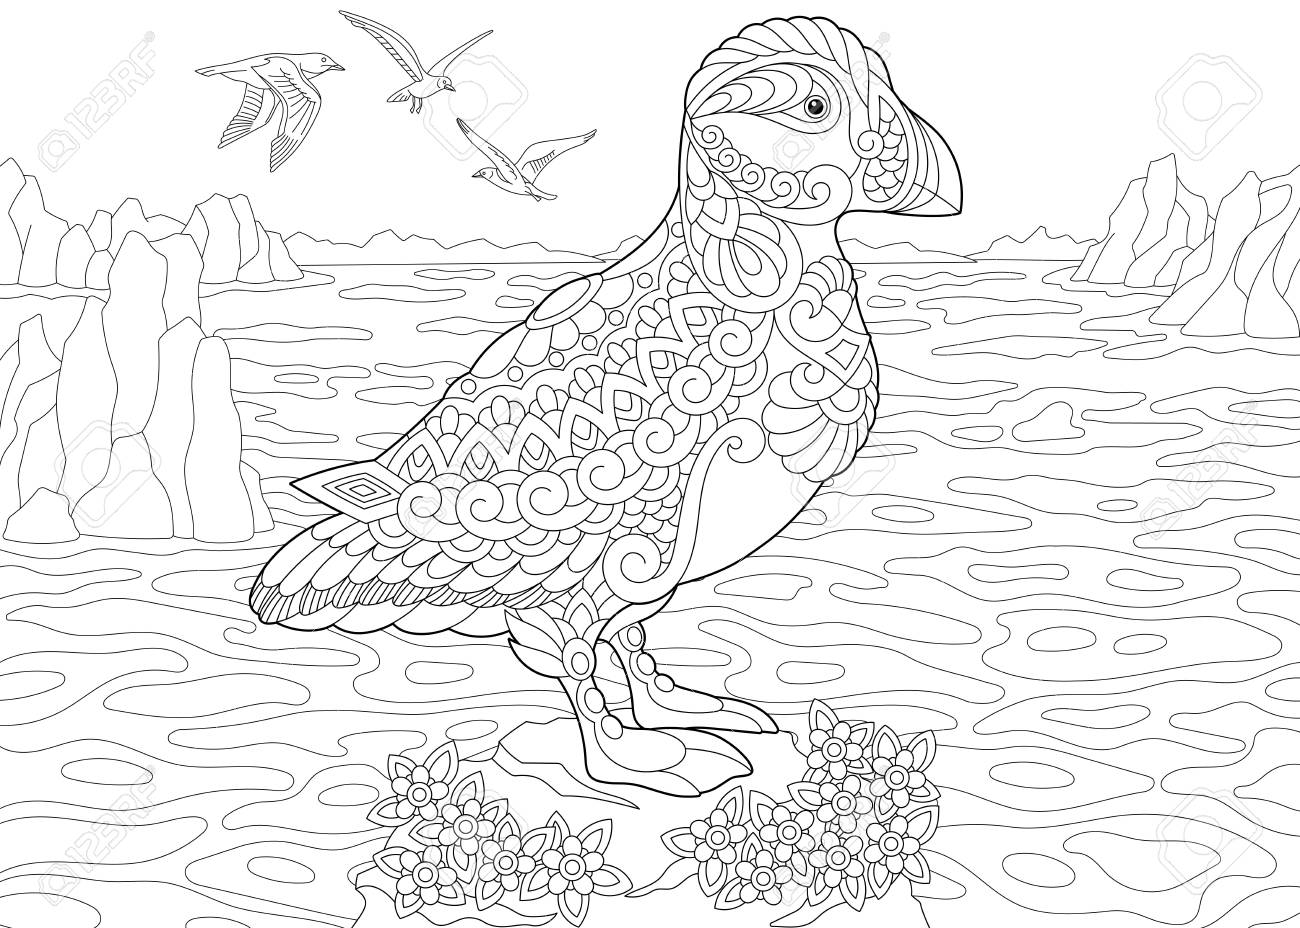 Coloring Page. Adult Coloring Book. Puffin, A Hole-nesting Auk ...